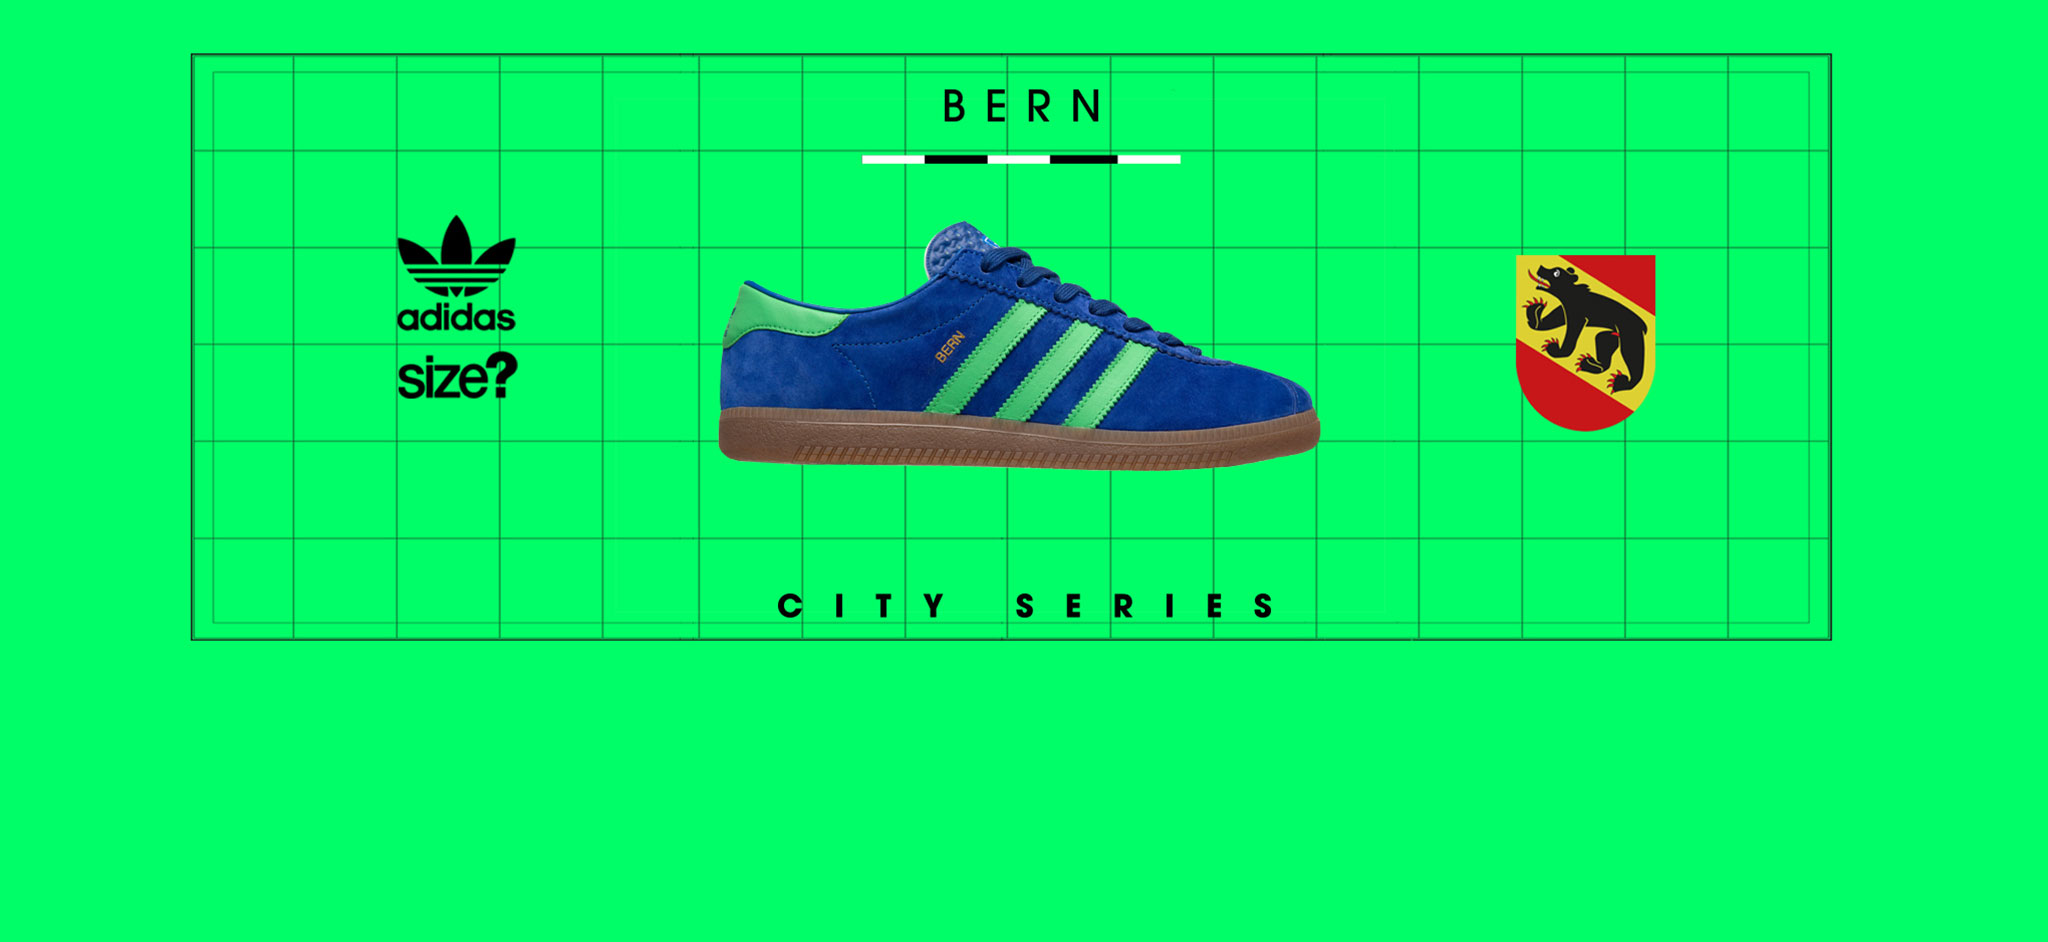 official photos 287de 70487 adidas Originals Bern  City Series